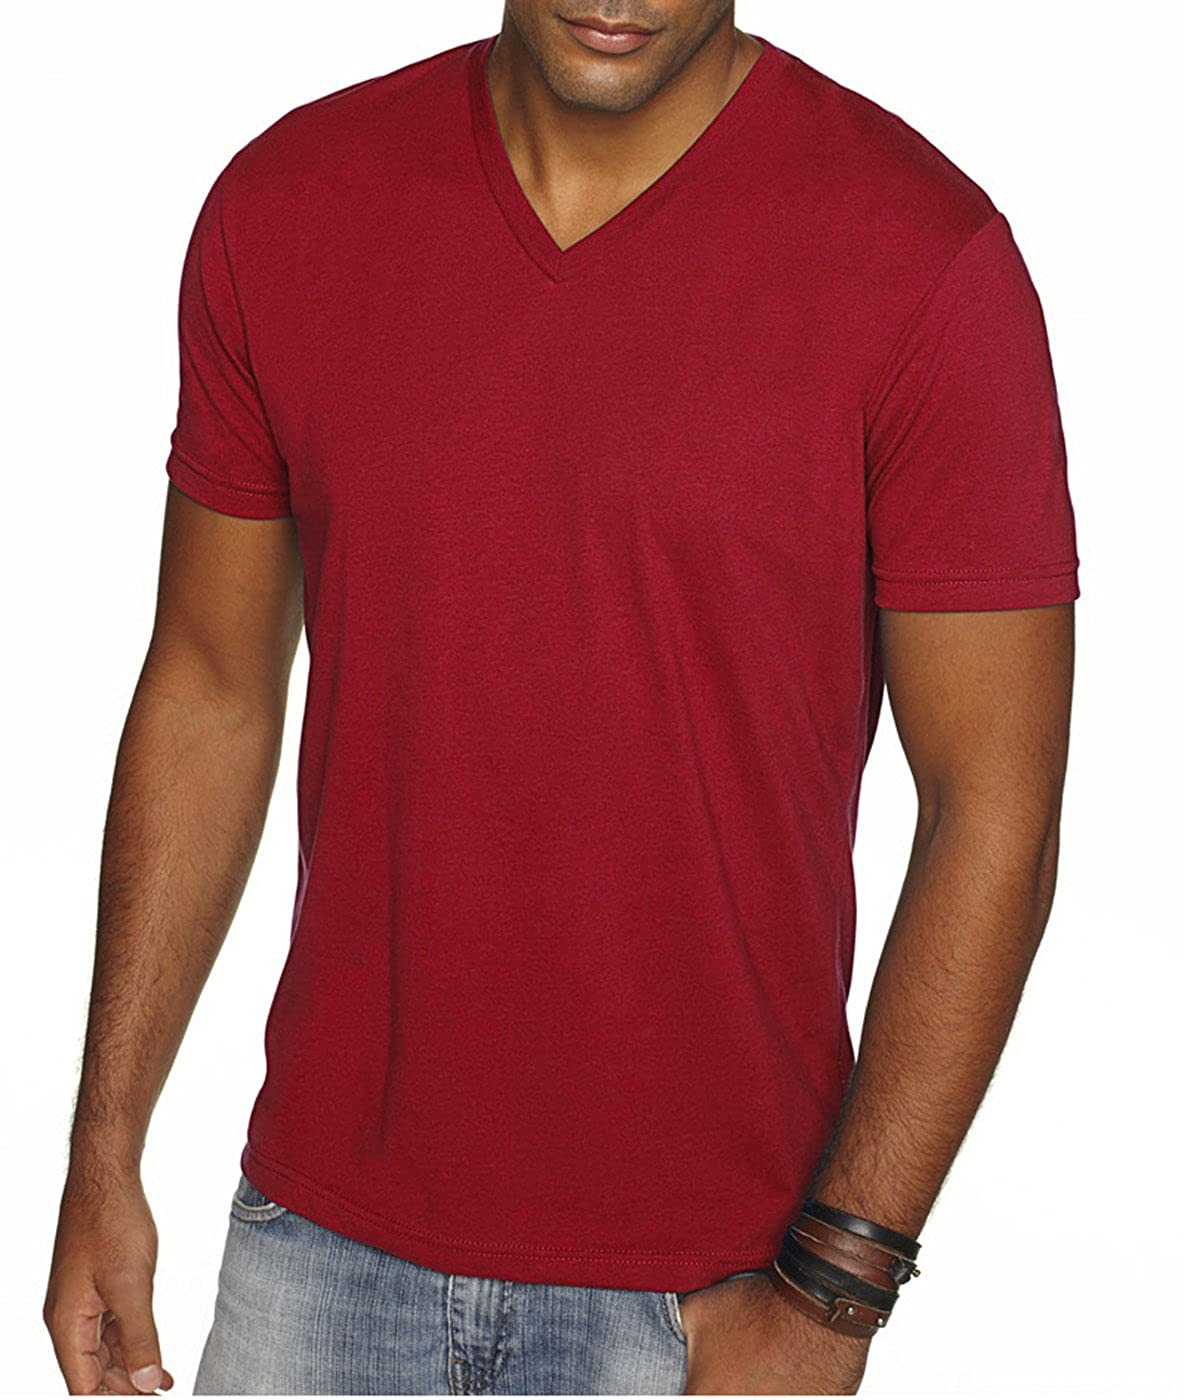 294d8bbedfa Next Level Apparel 6440 Mens Premium Fitted Sueded V-Neck Tee -2 Pack